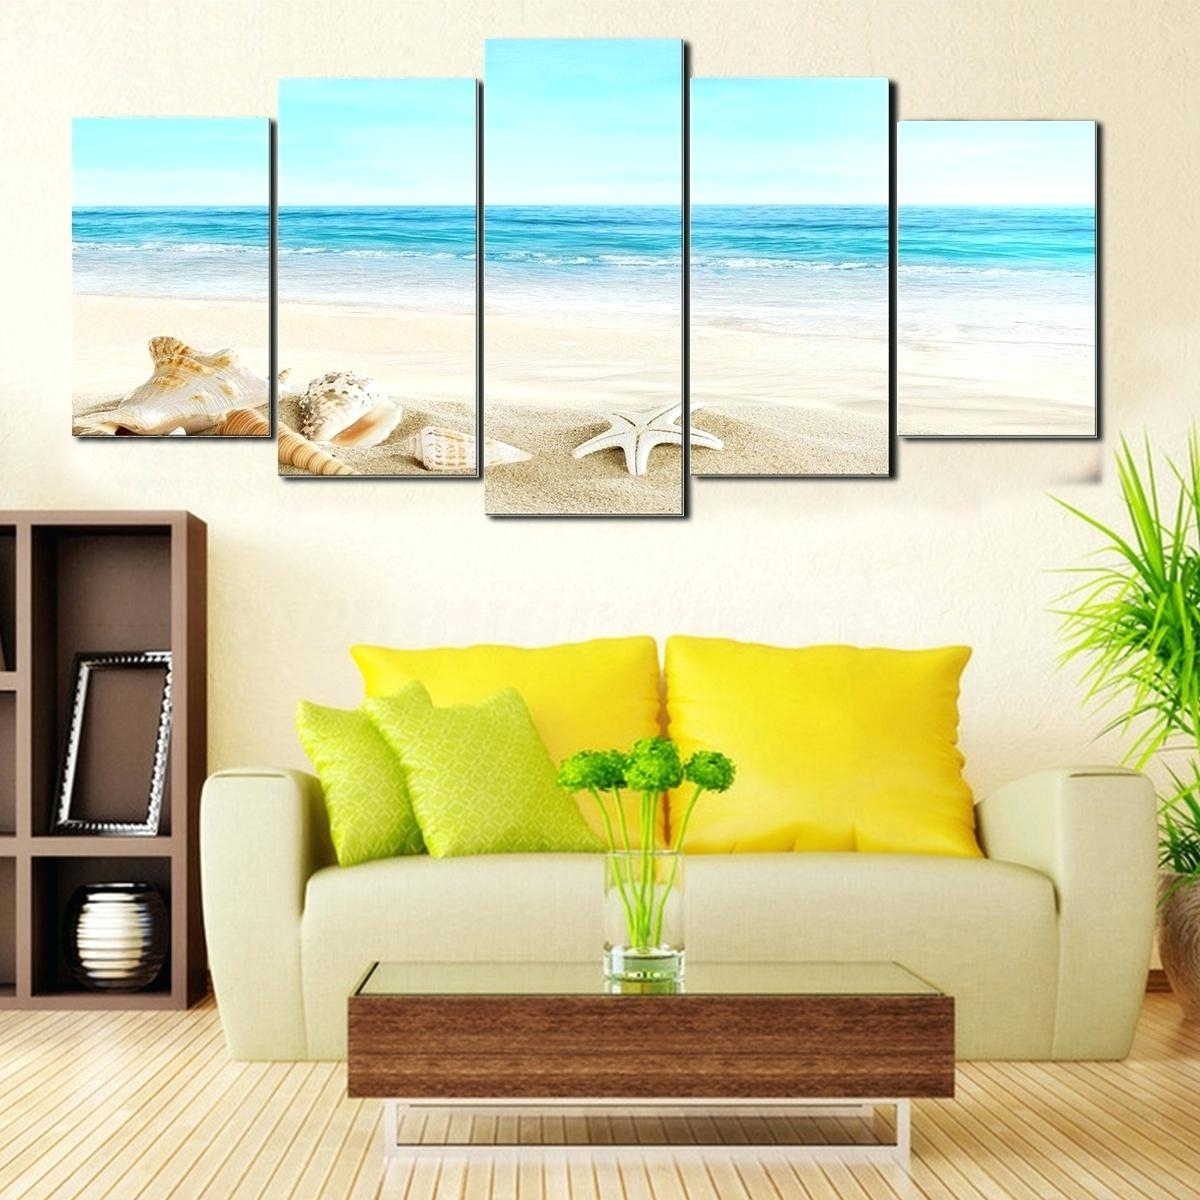 Showing Gallery of Framed Beach Art Prints (View 4 of 15 Photos)